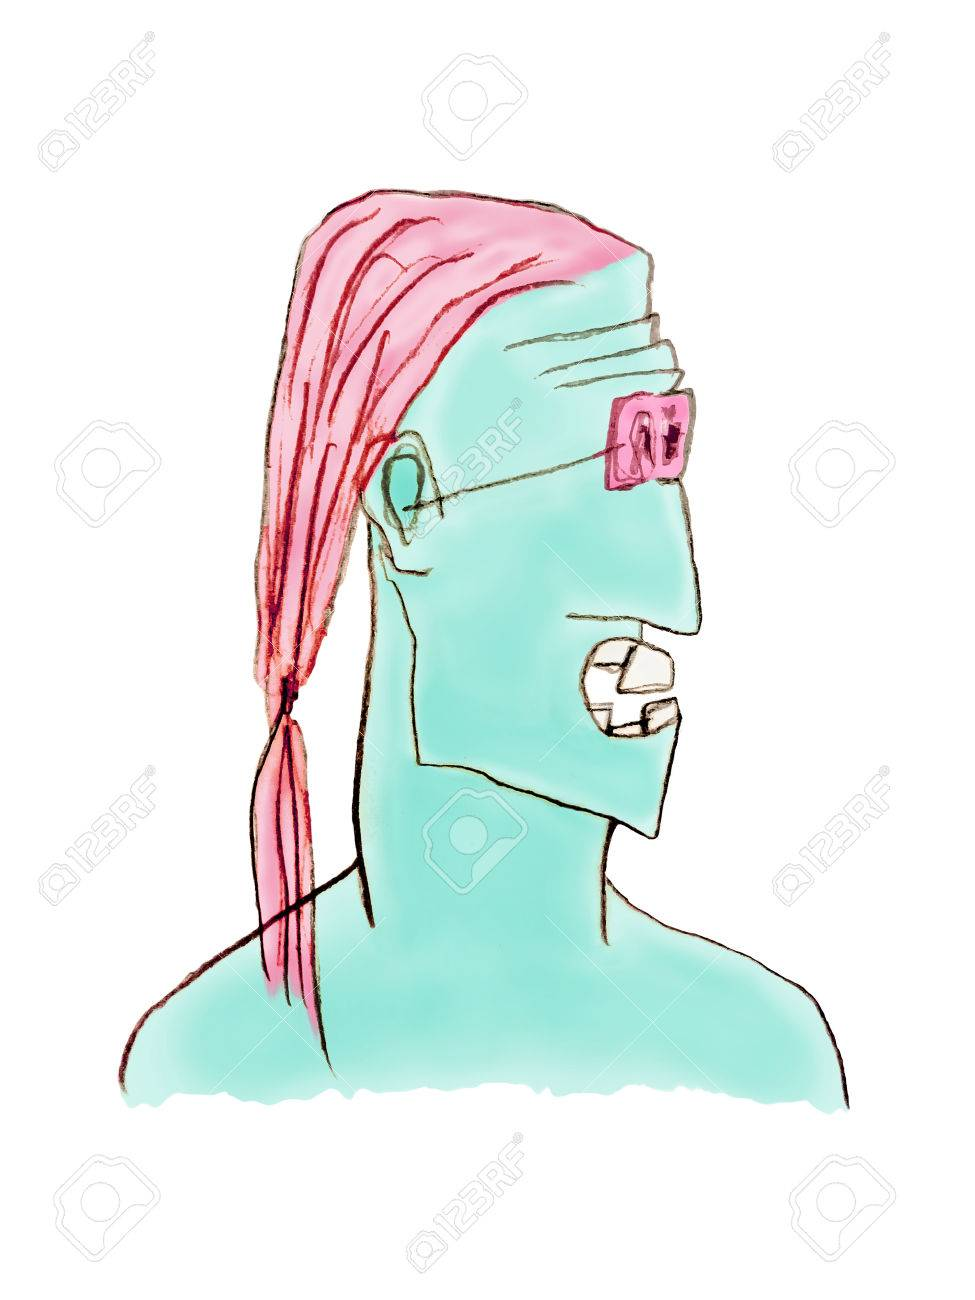 Angry expression long haired man with tail with surreal color skin pencil drawing illustration isolated in